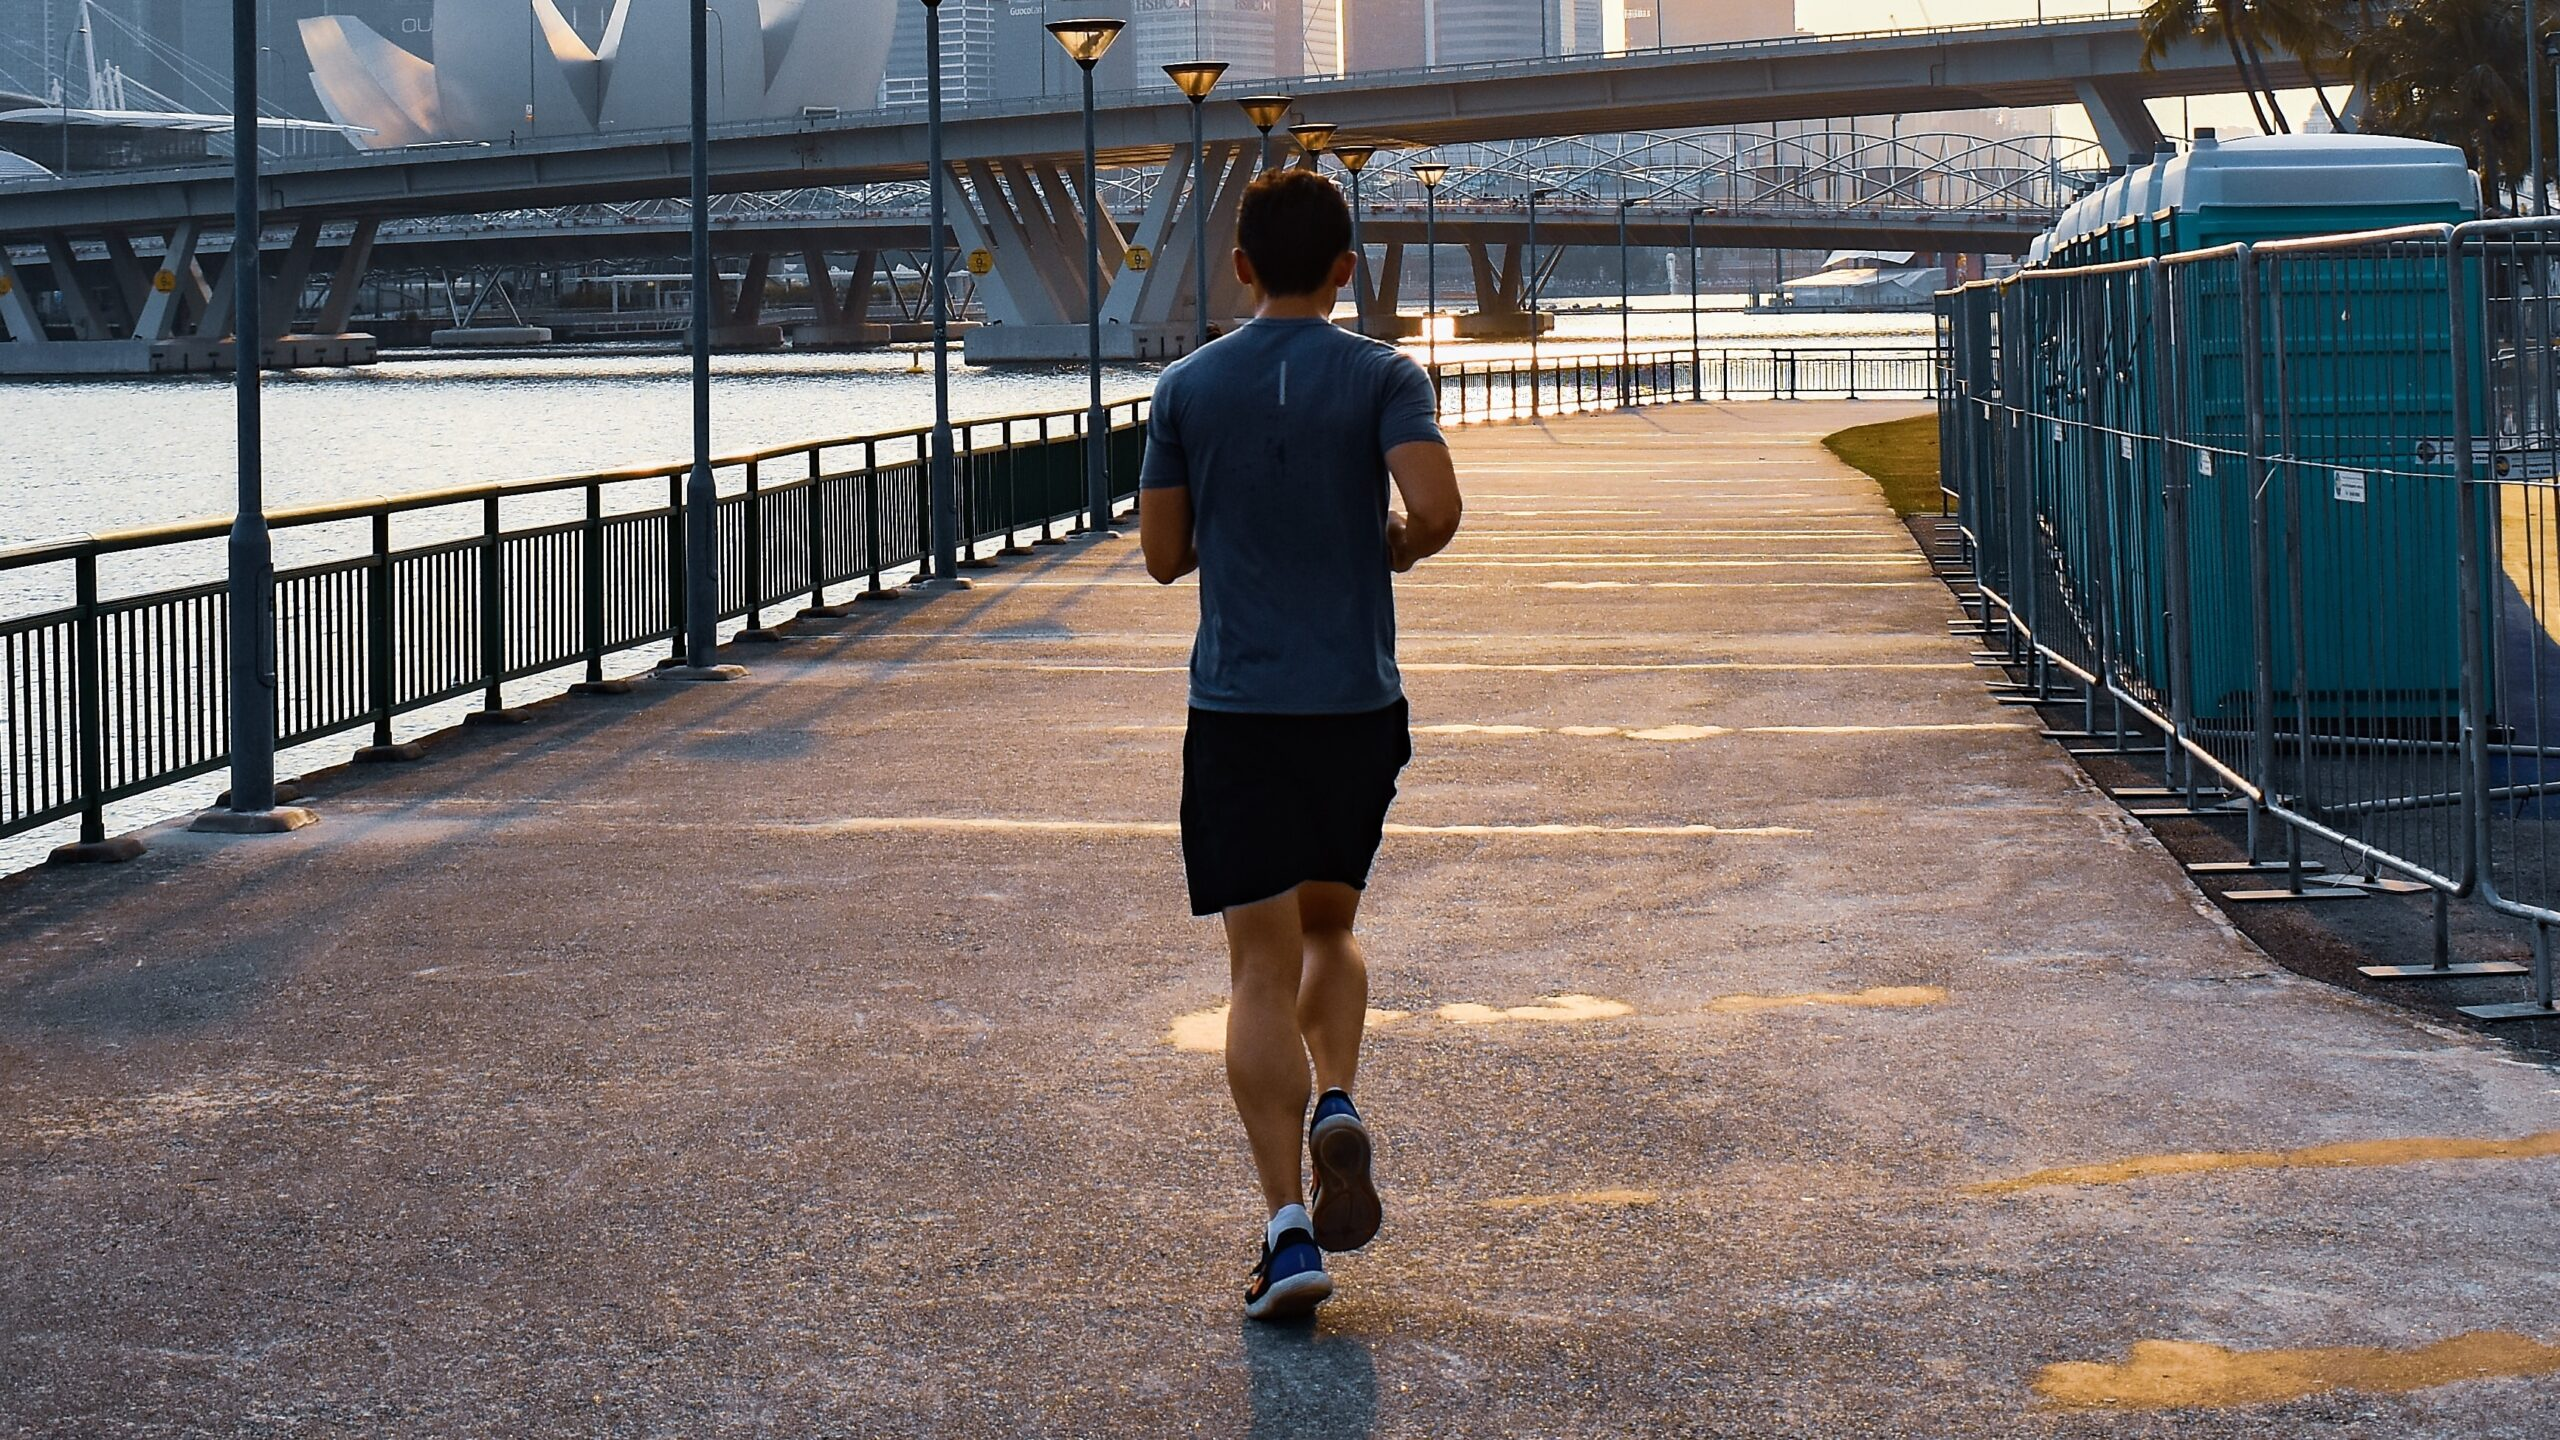 The back of a man jogging in a city